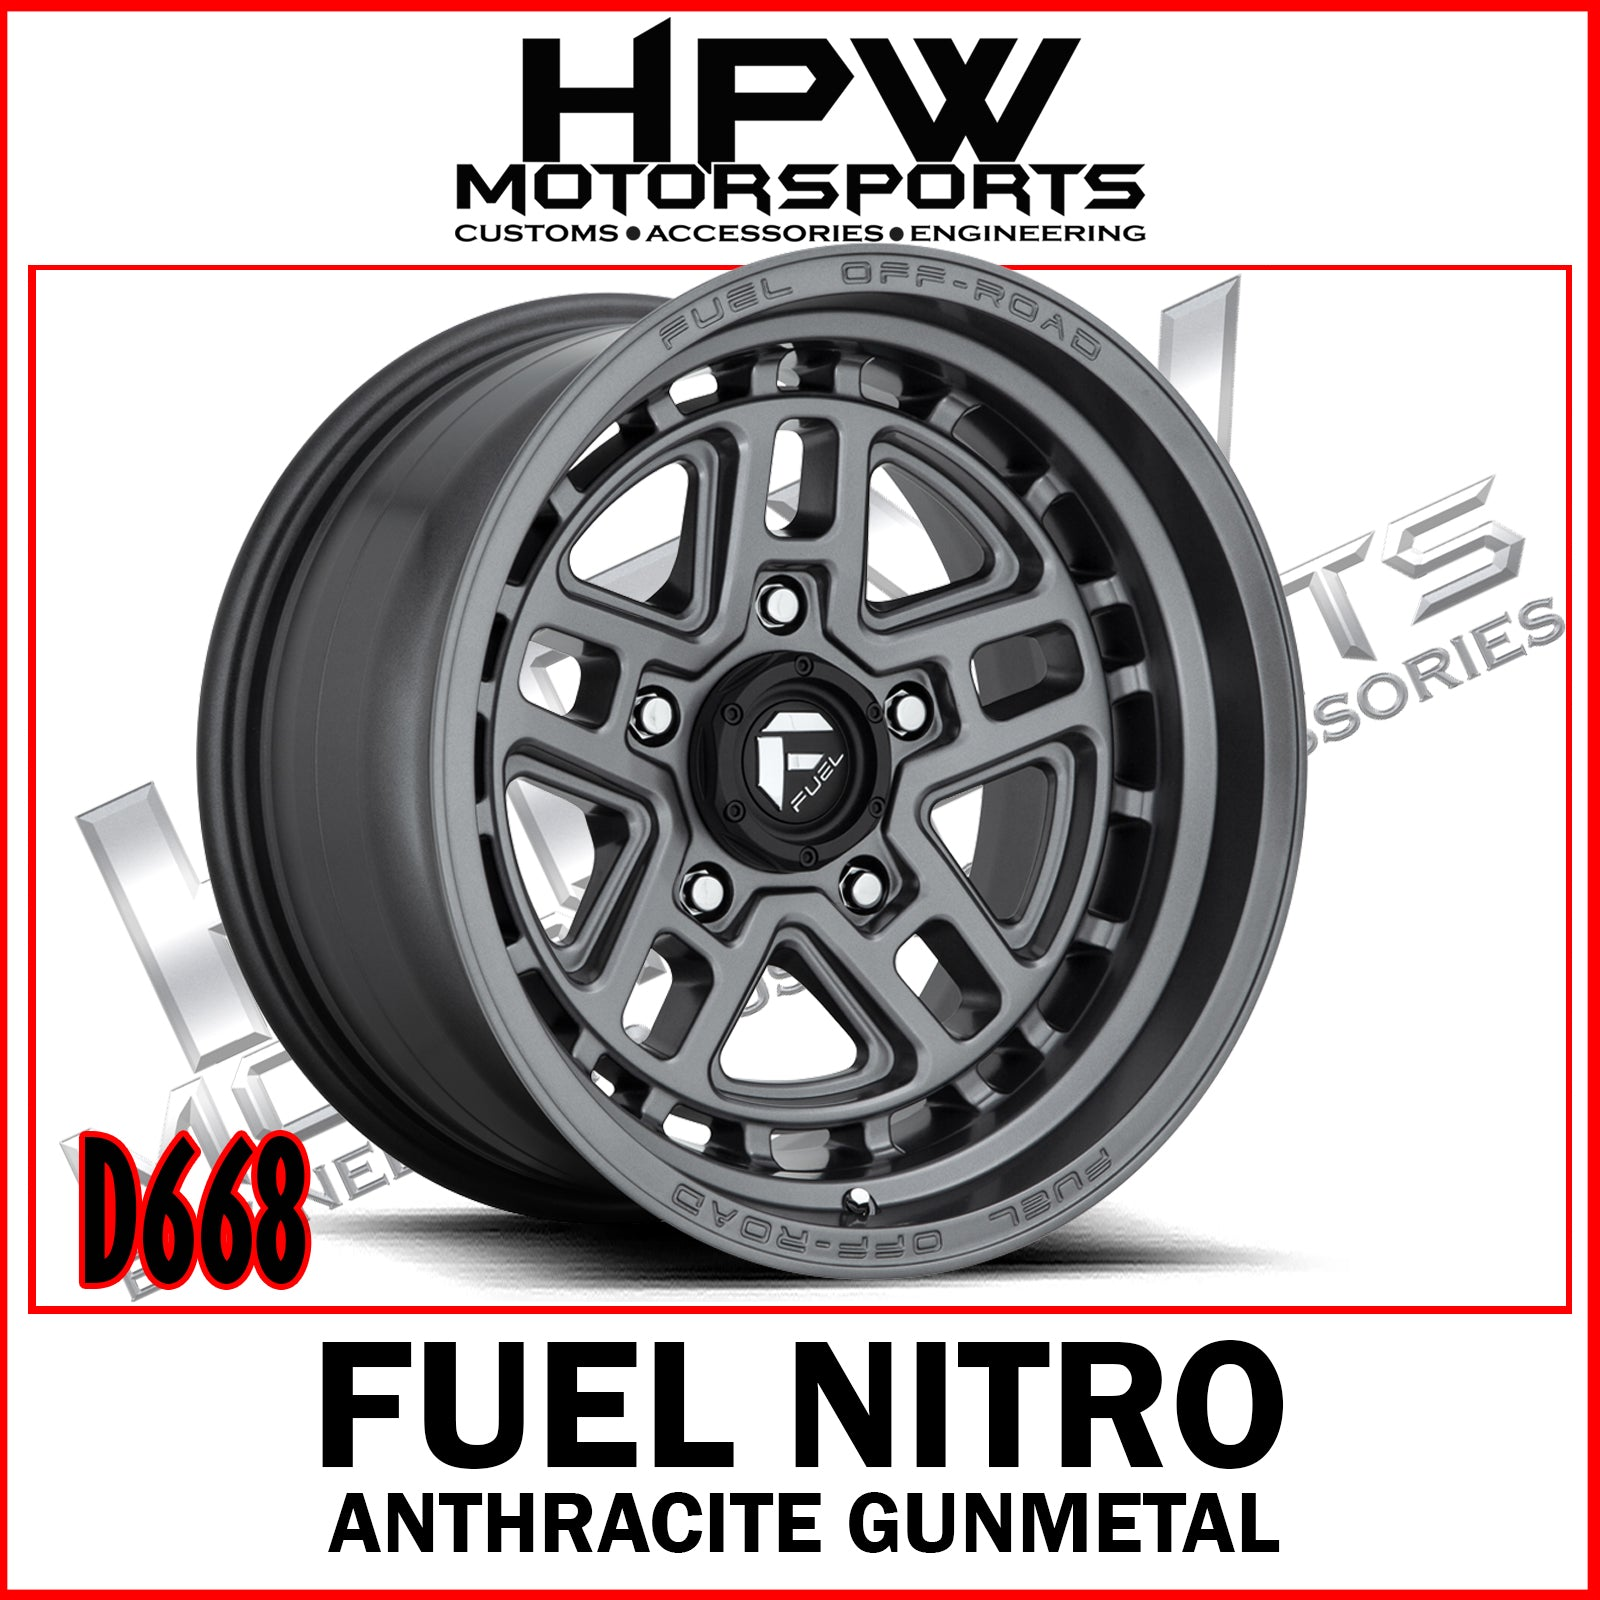 D668 FUEL NITRO - ANTHRACITE GUNMETAL- Set of 4